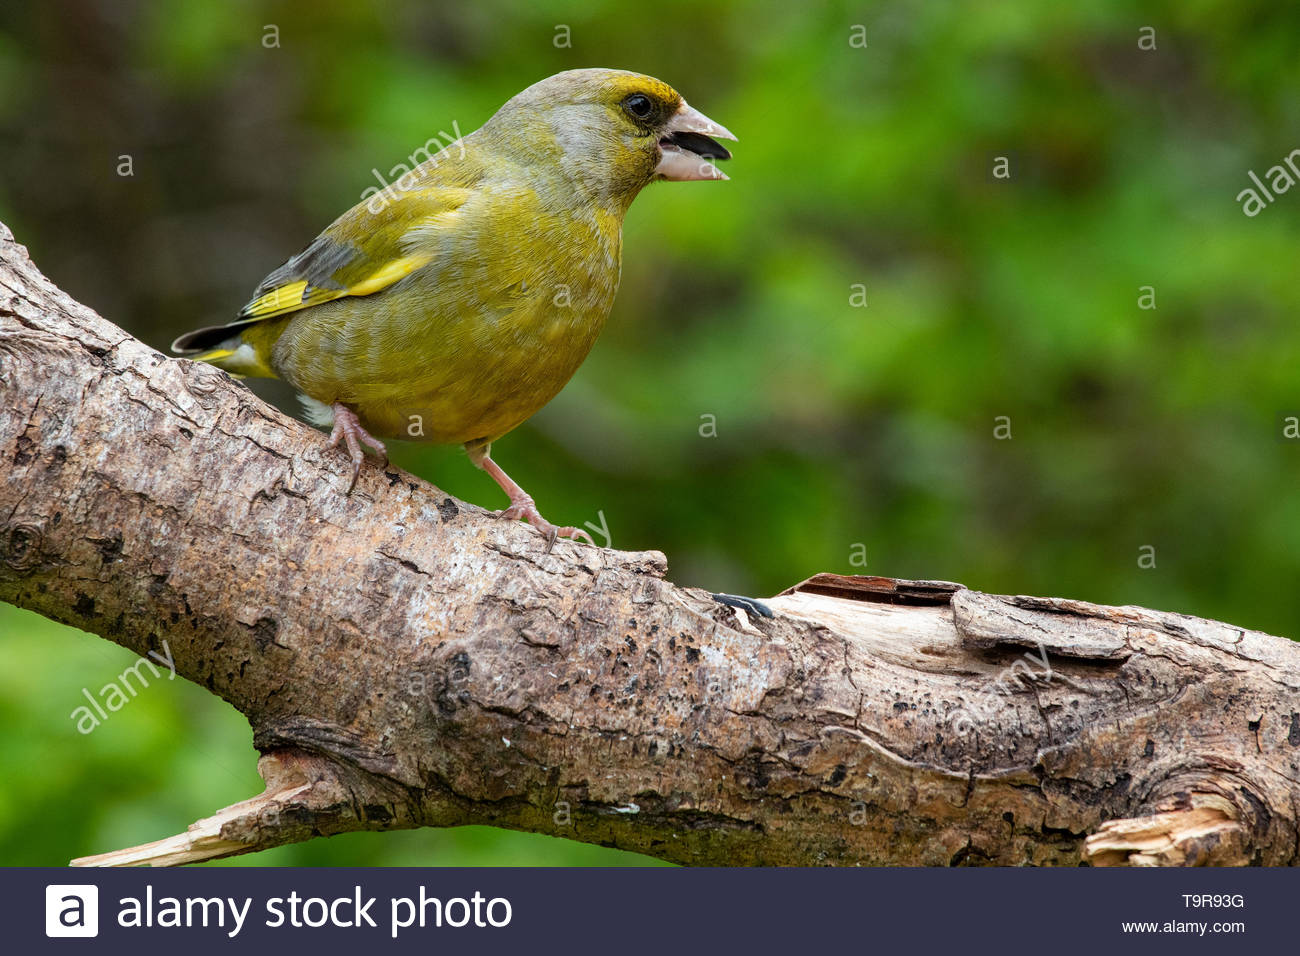 Greenfinch (Carduelis chloris) on tree branch - Stock Image